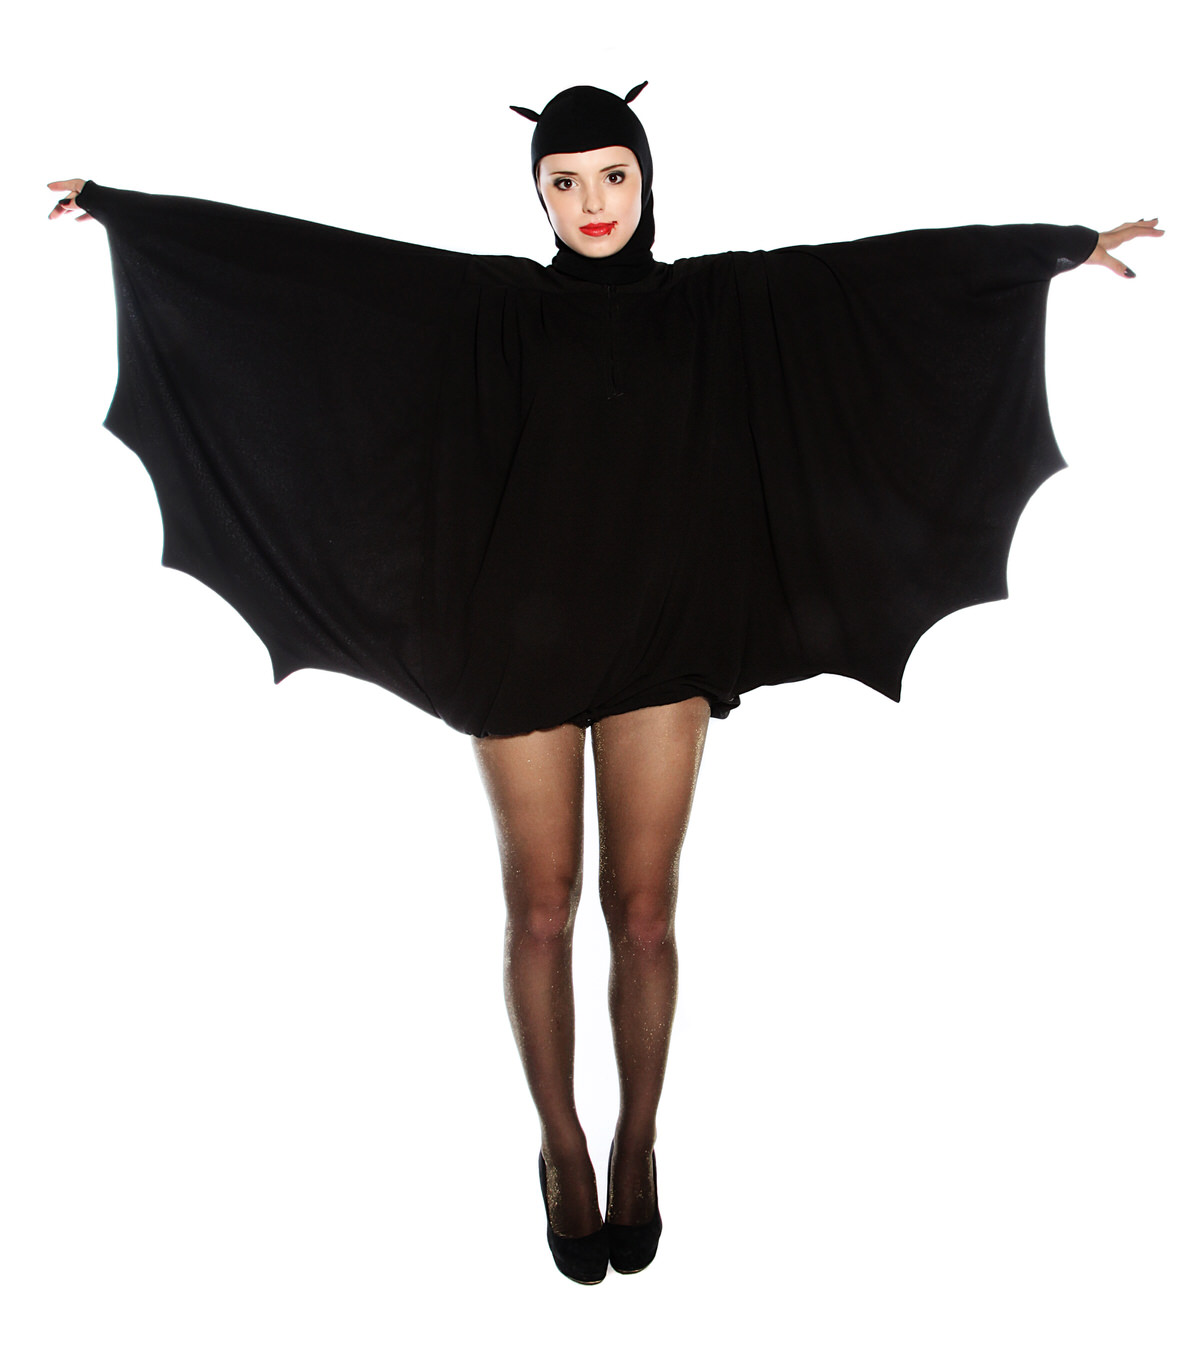 FUNKY 1960'S BAT COSTUME WITH BAT EARS